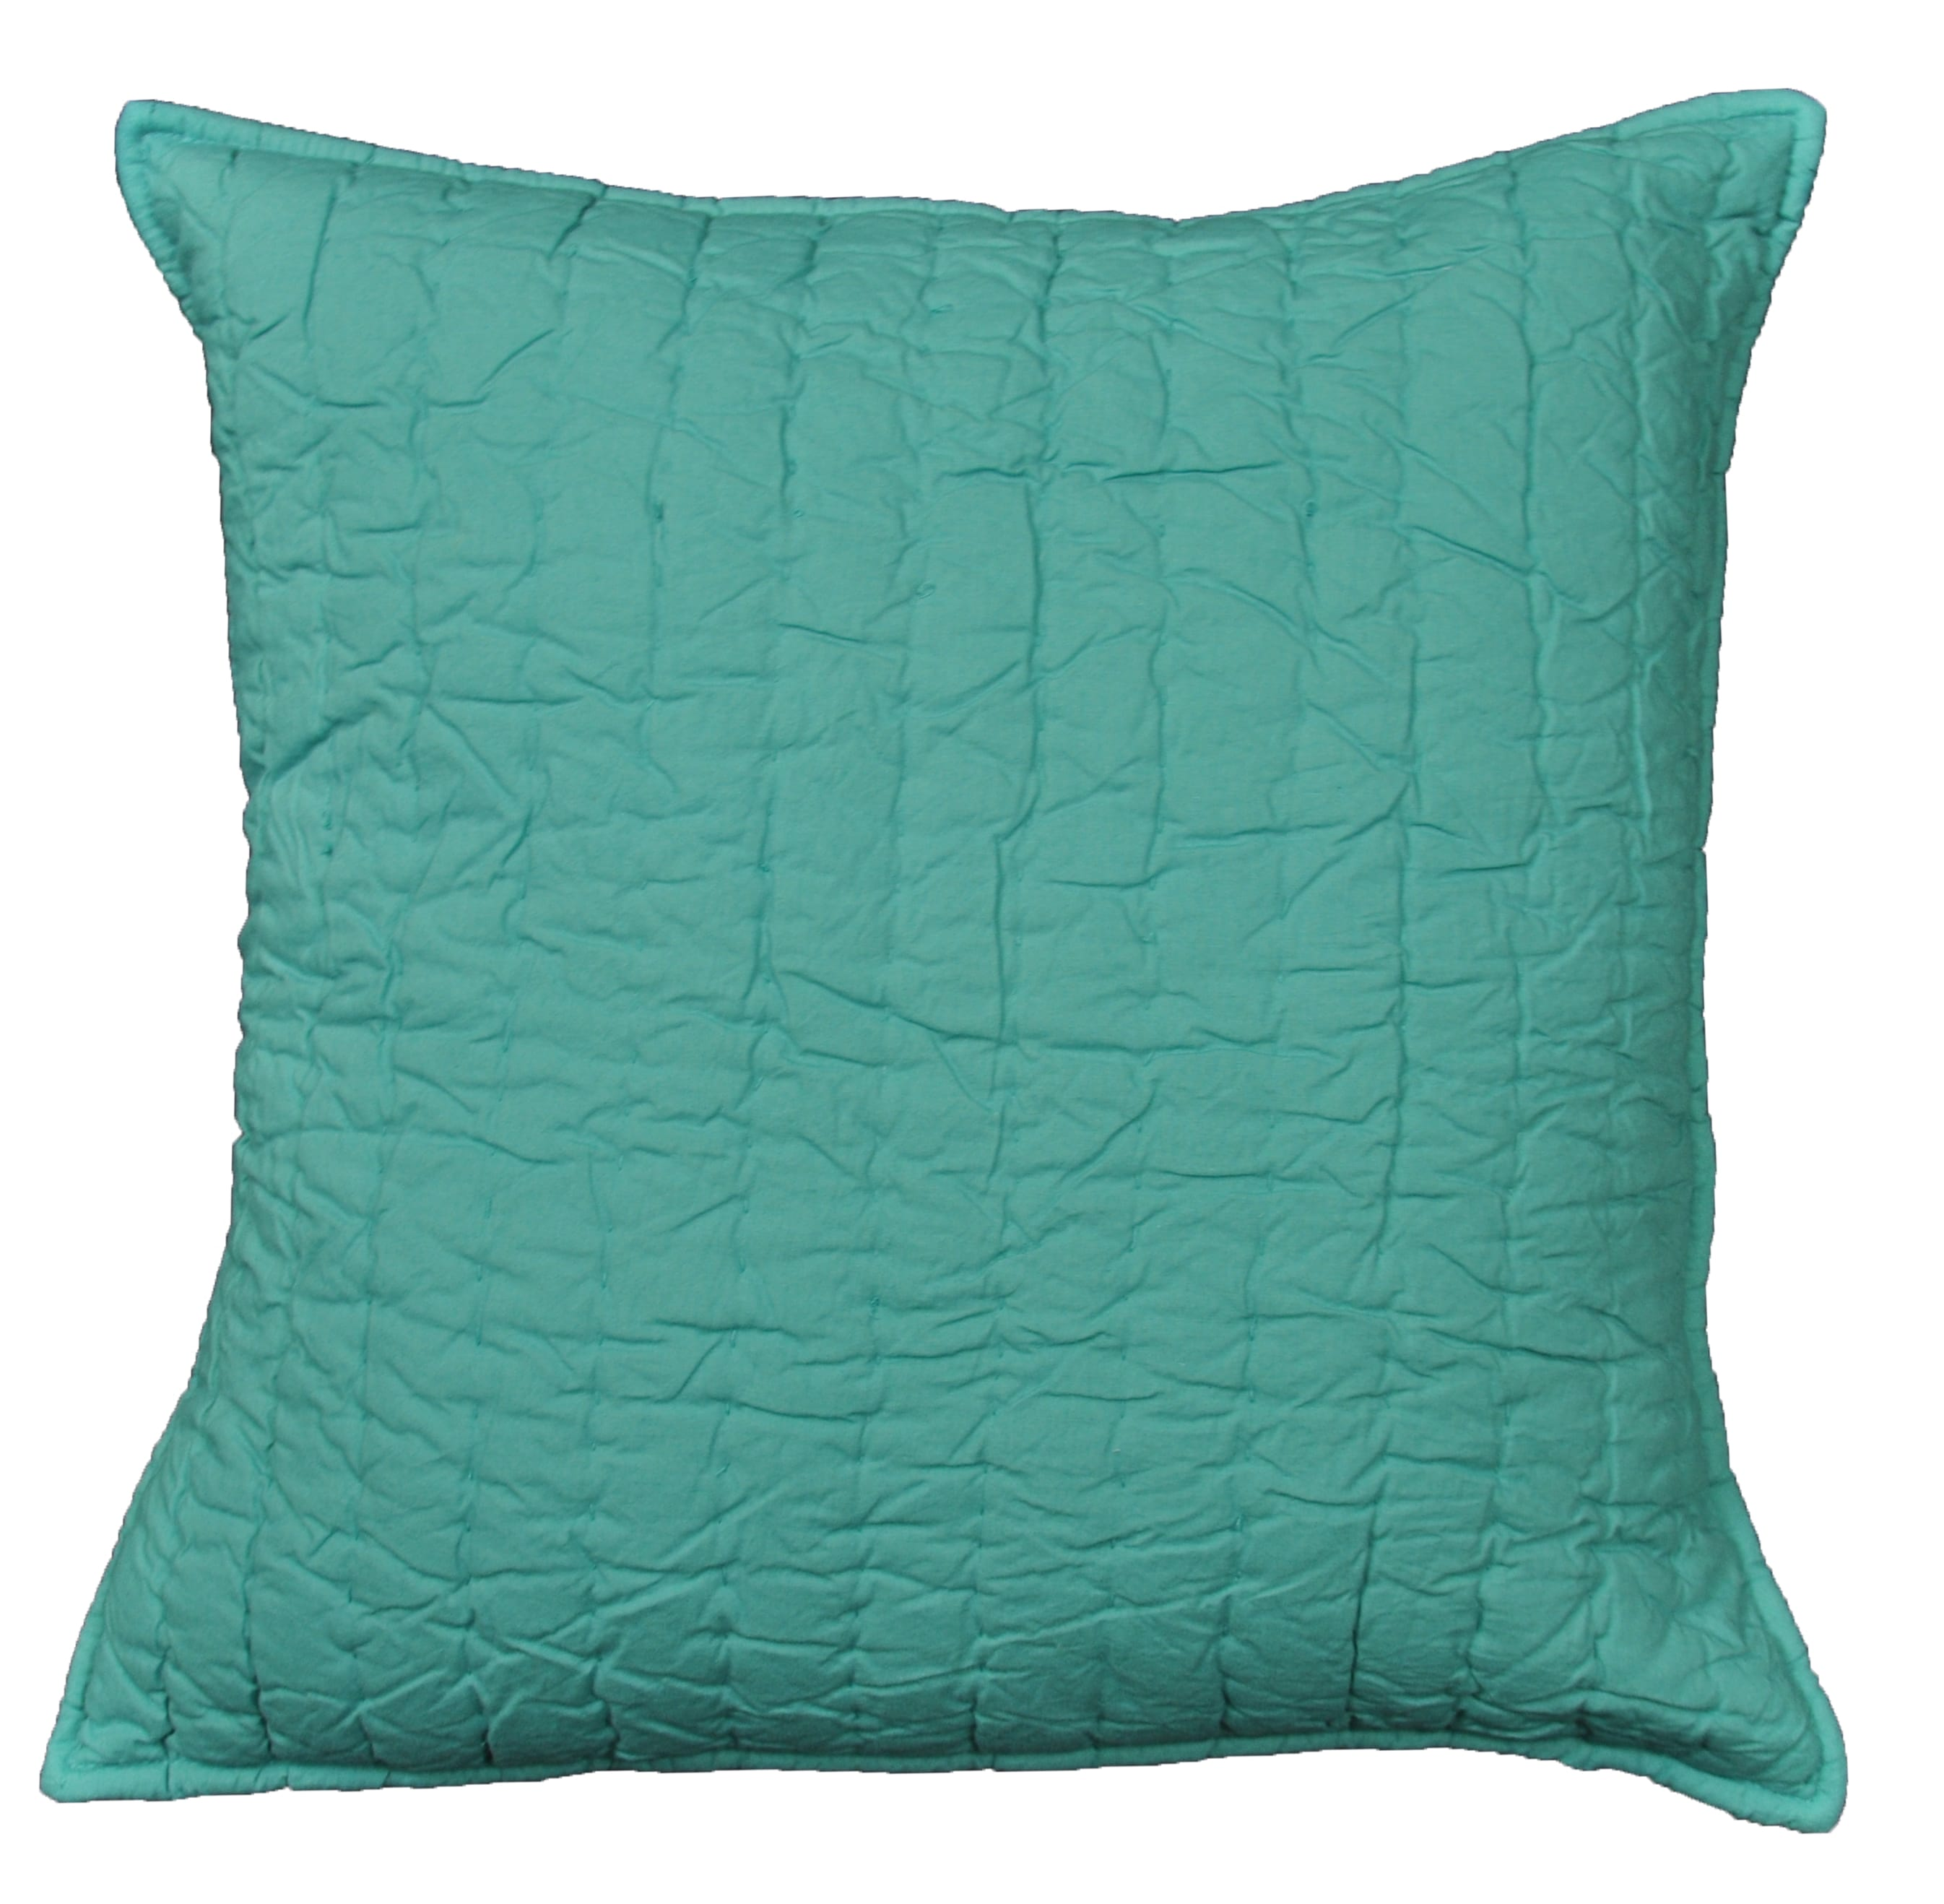 Decorative Pillows With Teal : Teal Decorative Pillows www.imgkid.com - The Image Kid Has It!